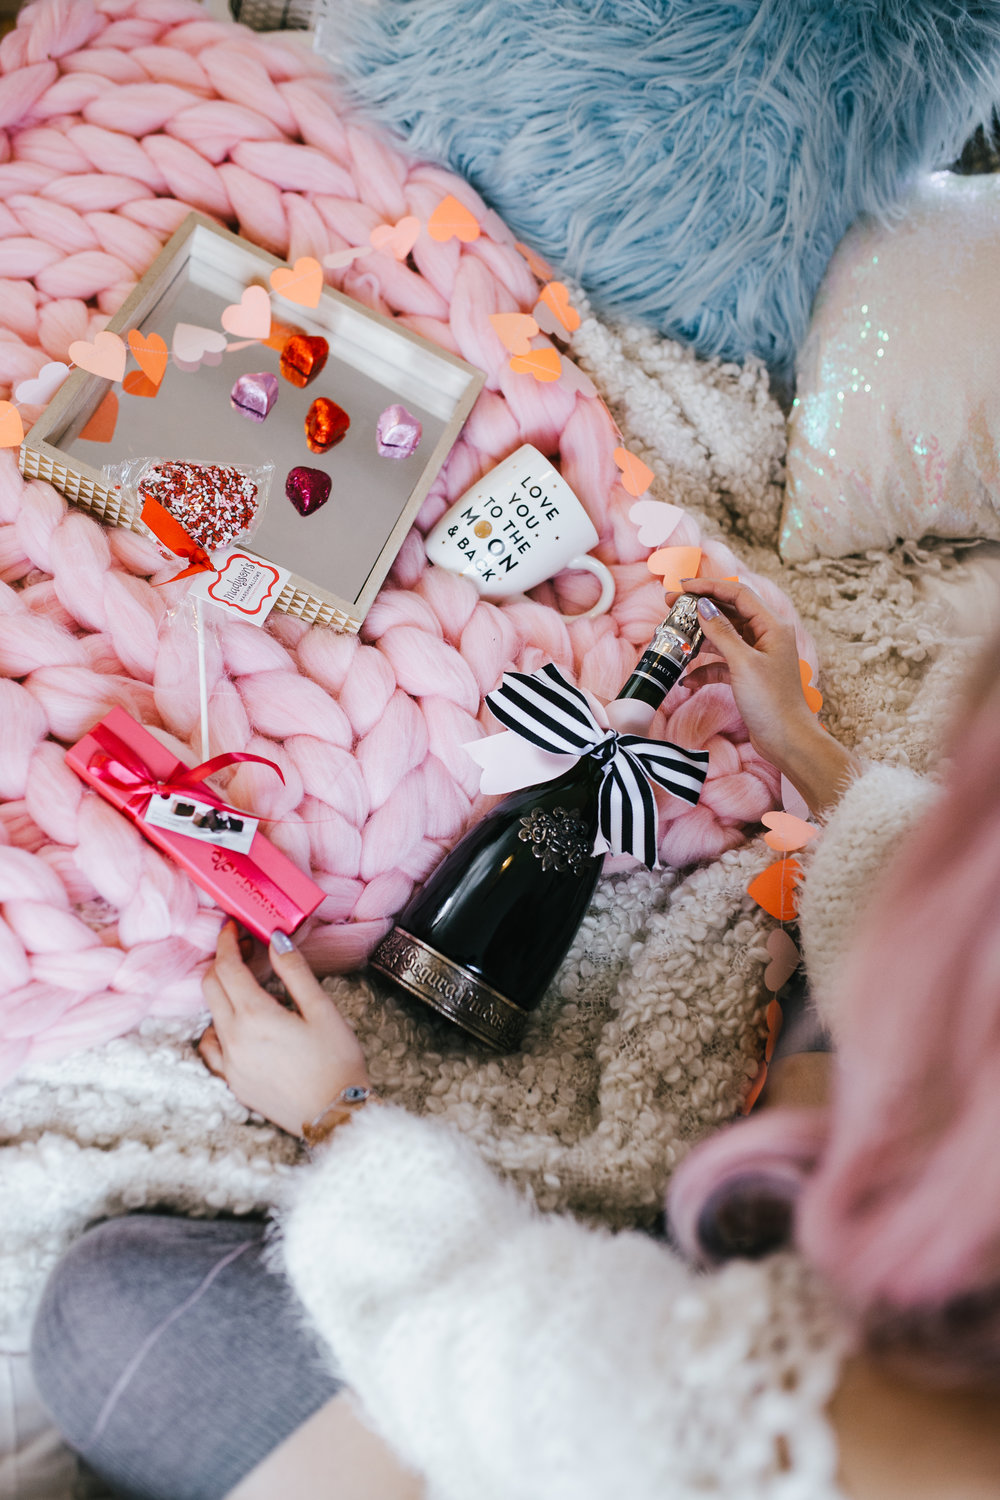 Segura Viudas Heredad Brut Reserva-I love you to the moon & back-heart chocolate-heart mini garland-Aika Yokoyama-AIkas Love Closet-heart ballons-special gift-galantine's day-valentine's day-sparkling wine-small room-chunky blanket-pink hair-fur pillow-chunky throw-japanese-lifestyle and style blogger-inspiration-seattle 10